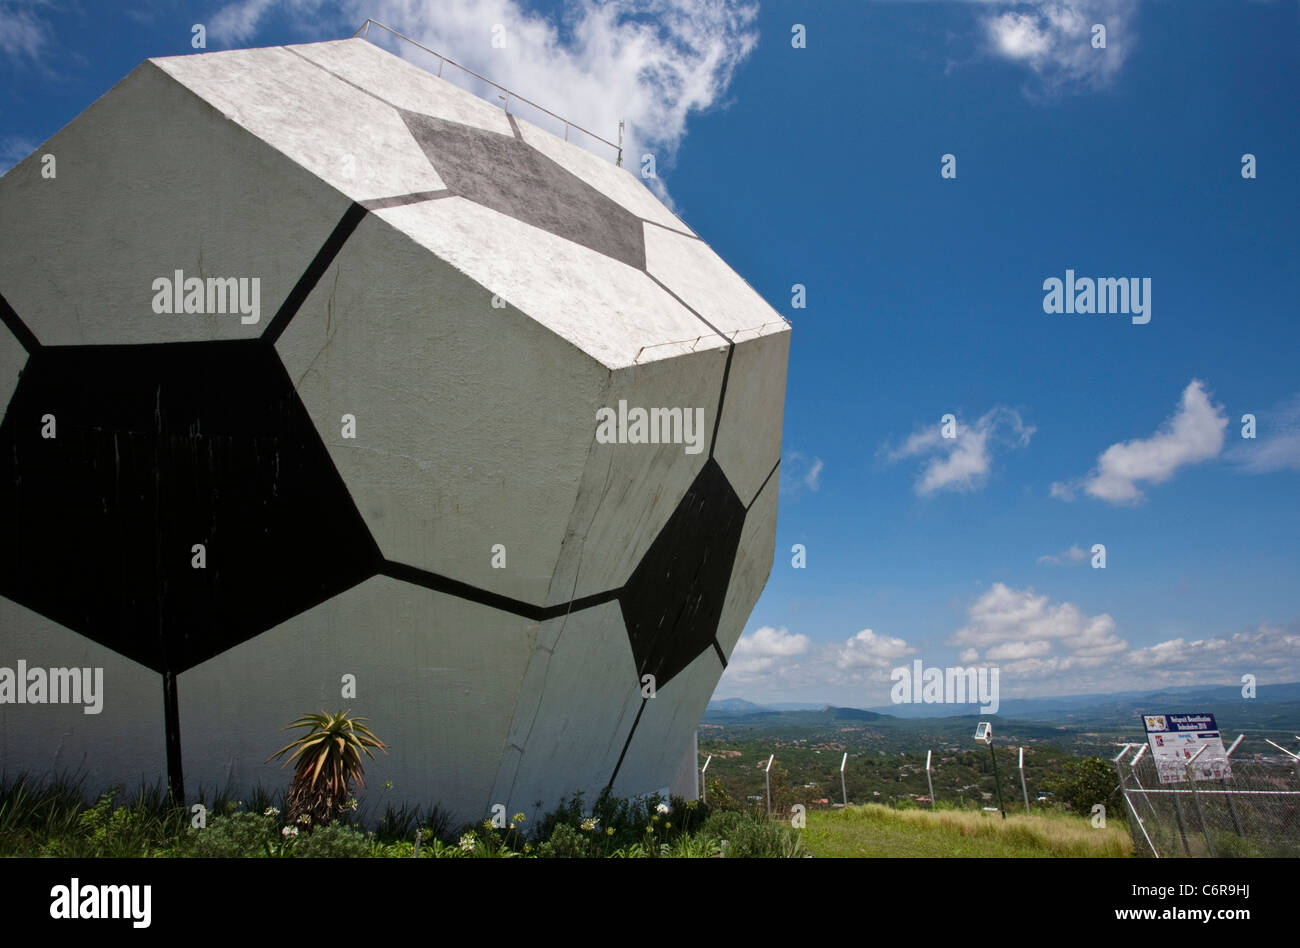 A Dodecahedron Water Reservoir Overlooking Nelspruit Decorated As Football To Commemorate The 2010 World Cup